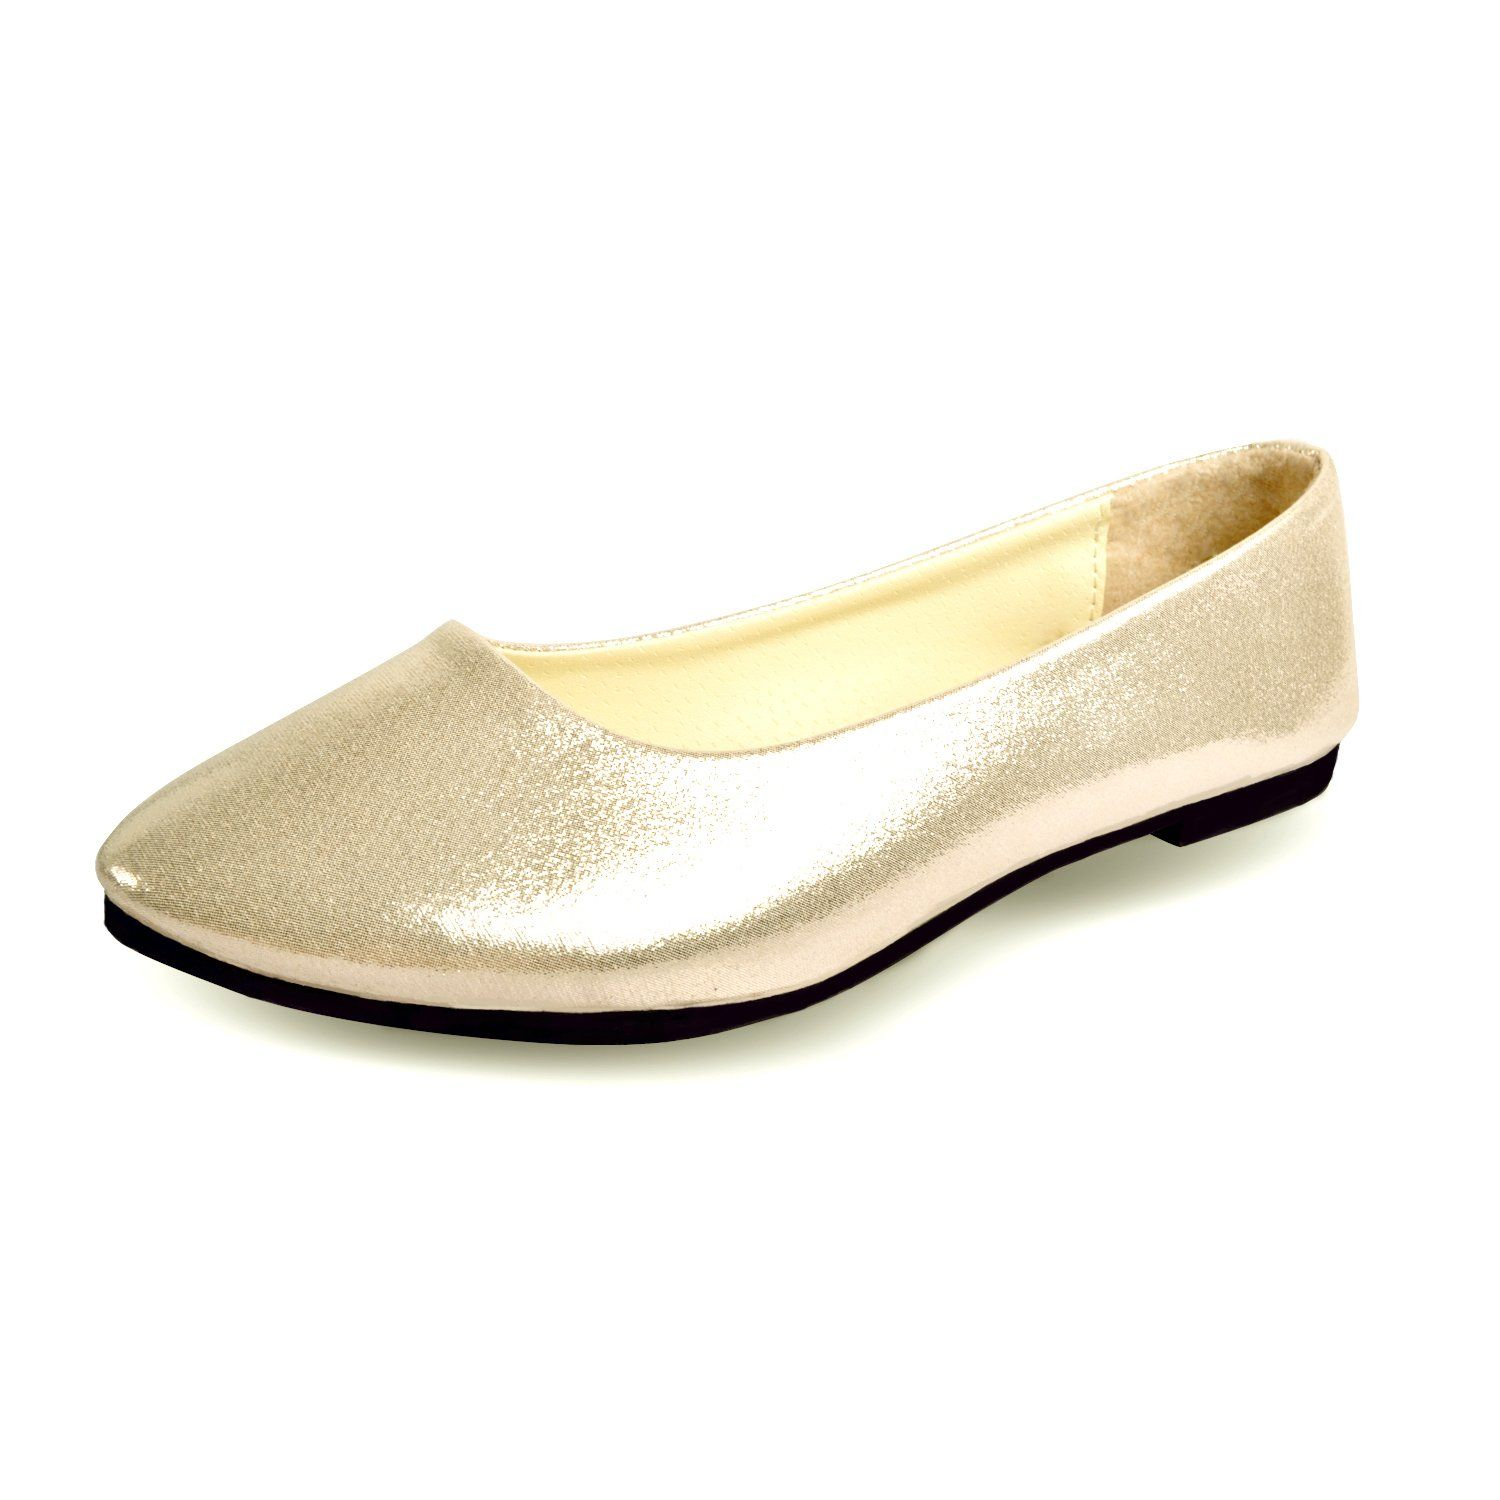 Womens Nova Adora Women's Dress Ballet Bow Flats Offer Size 36